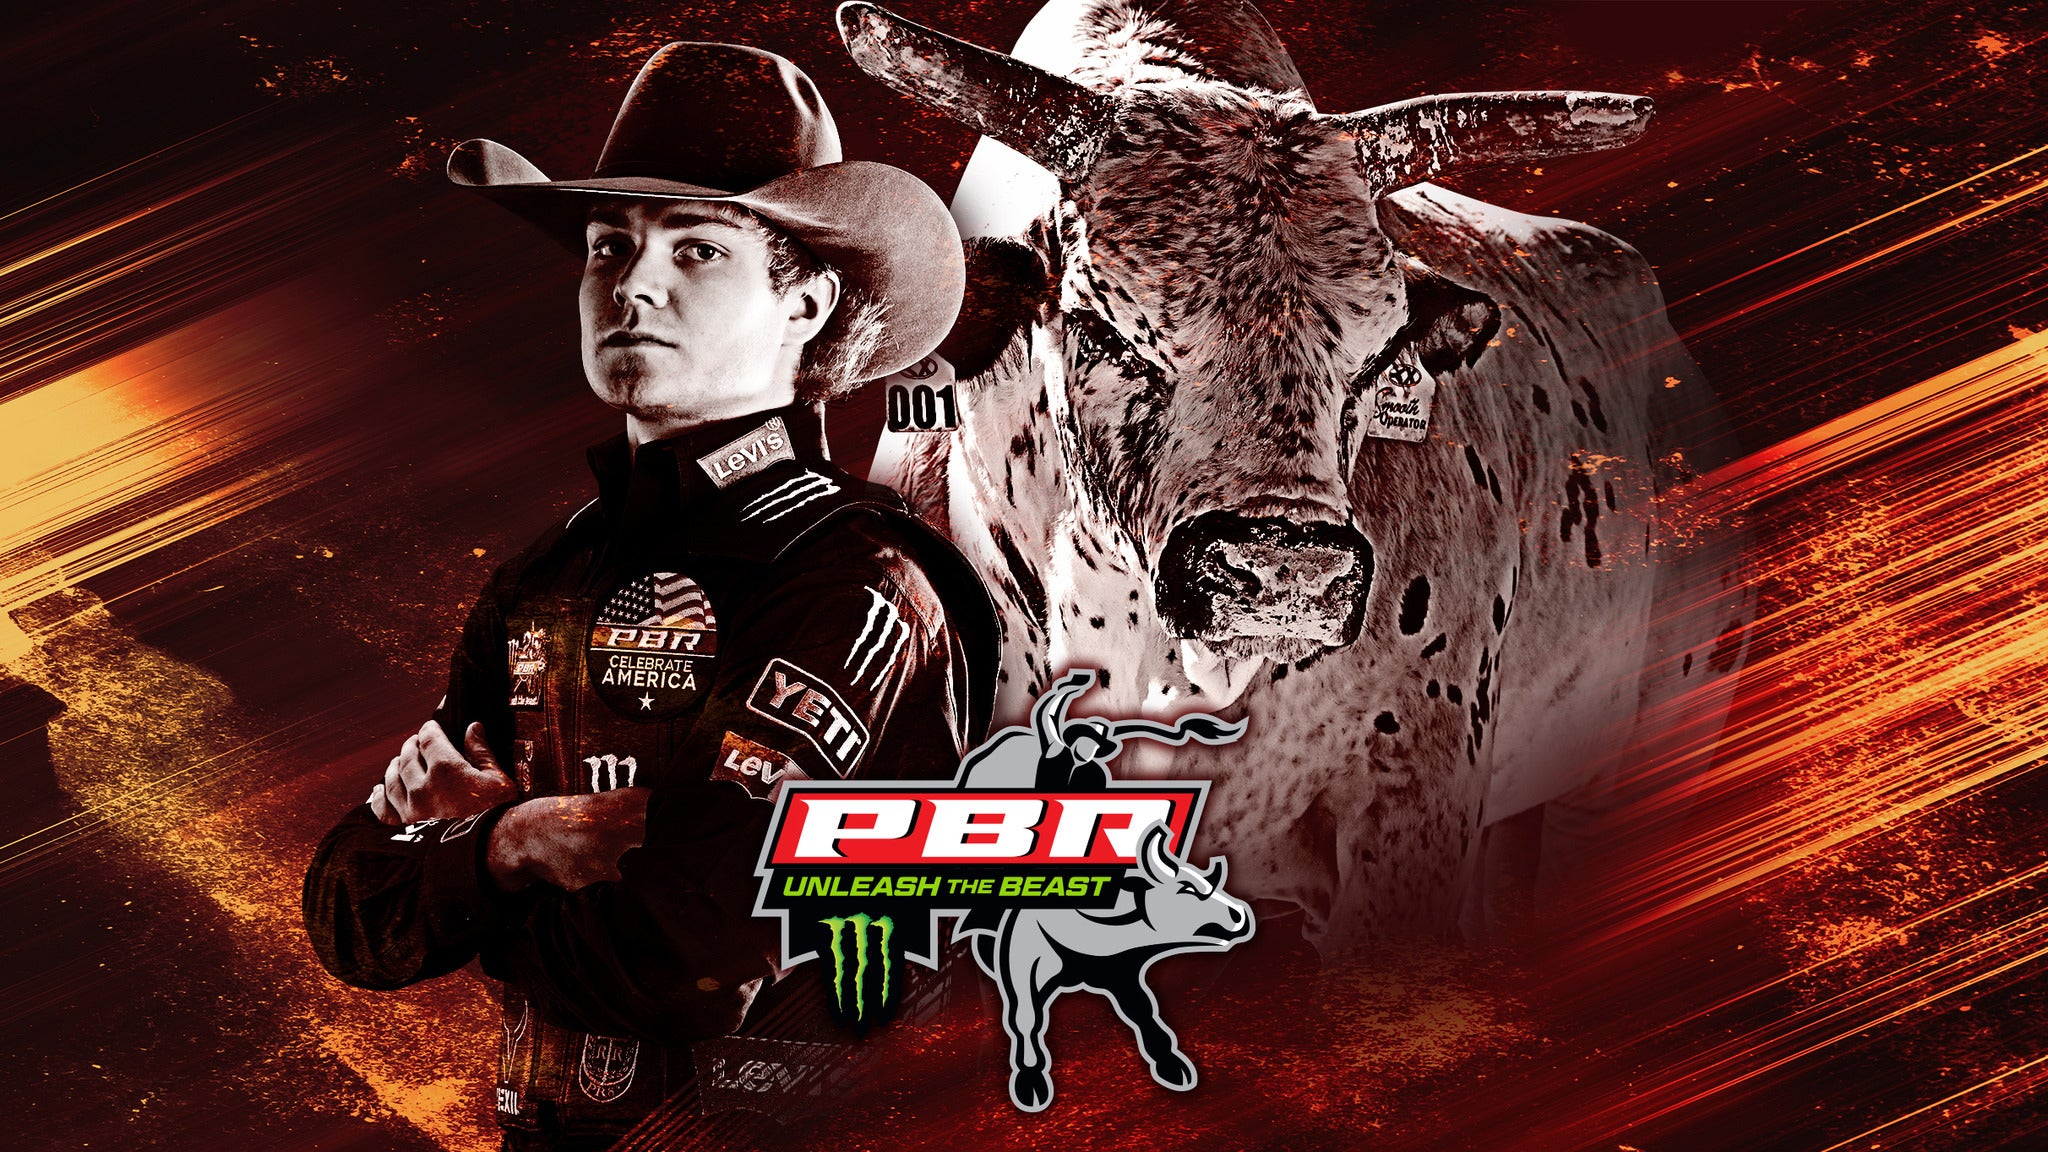 PBR: Unleash the Beast vs. PBR: Professional Bull Riders